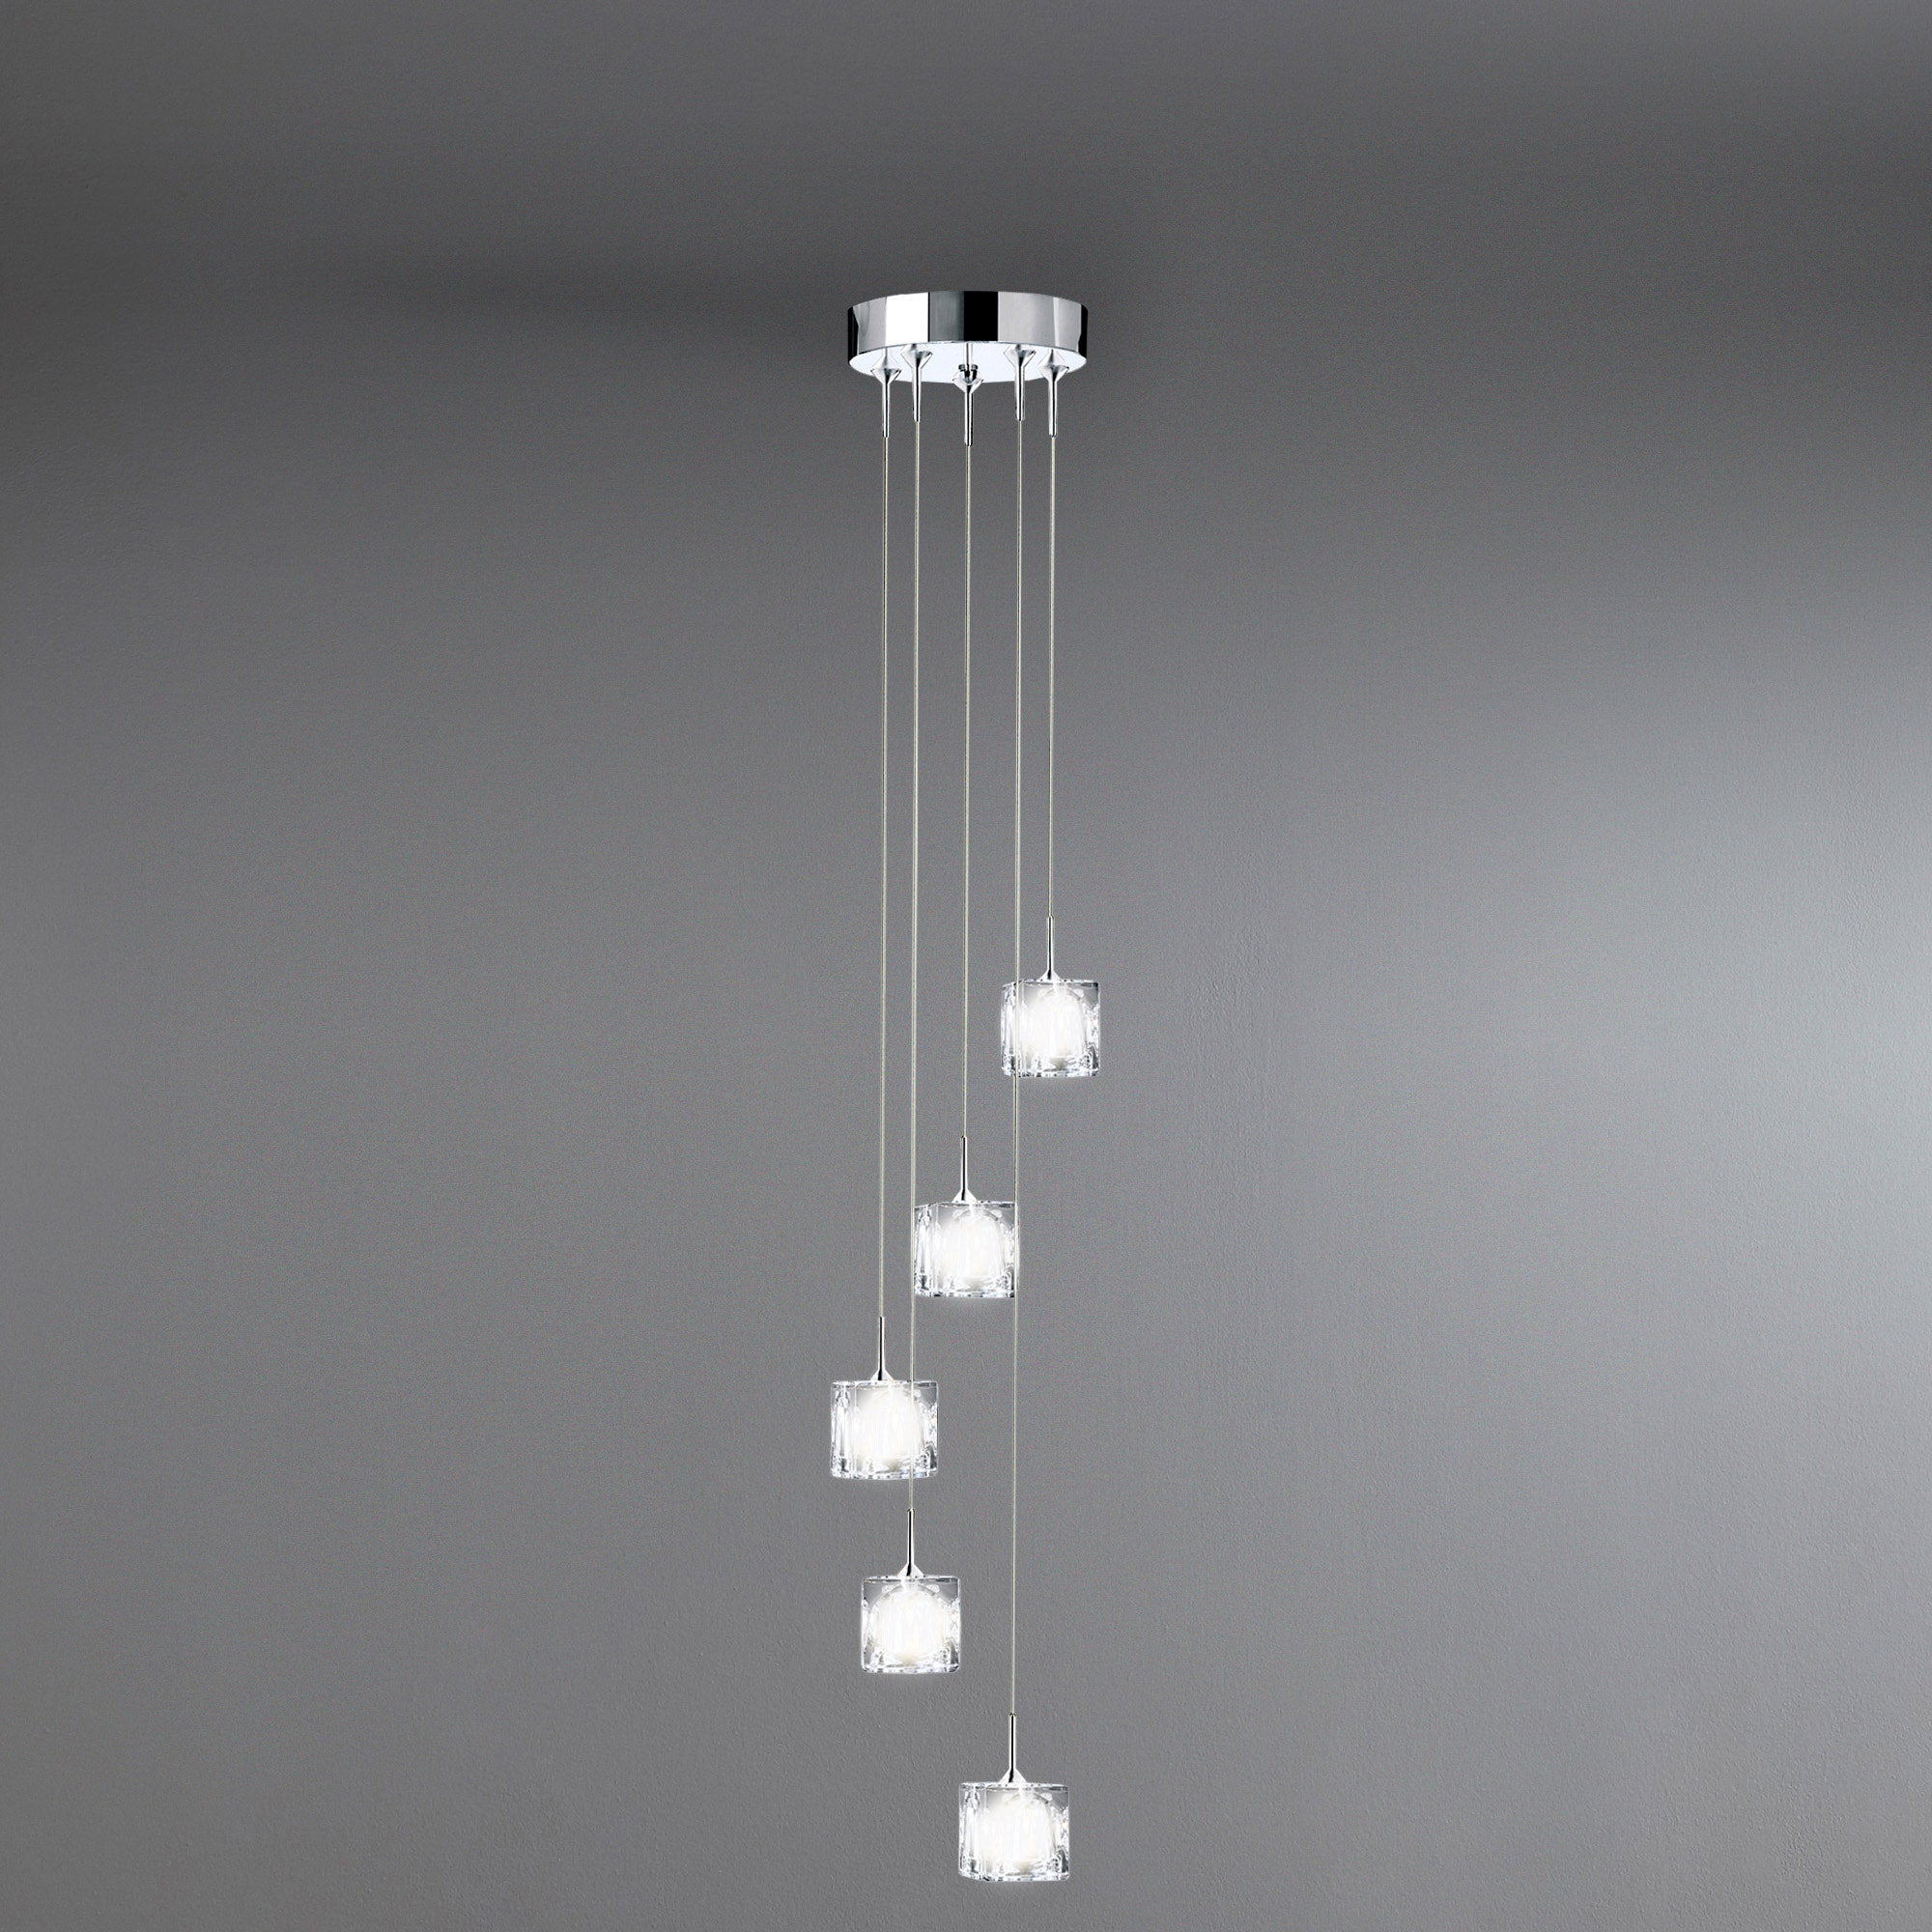 5 Light Ice Cube Ceiling Fitting